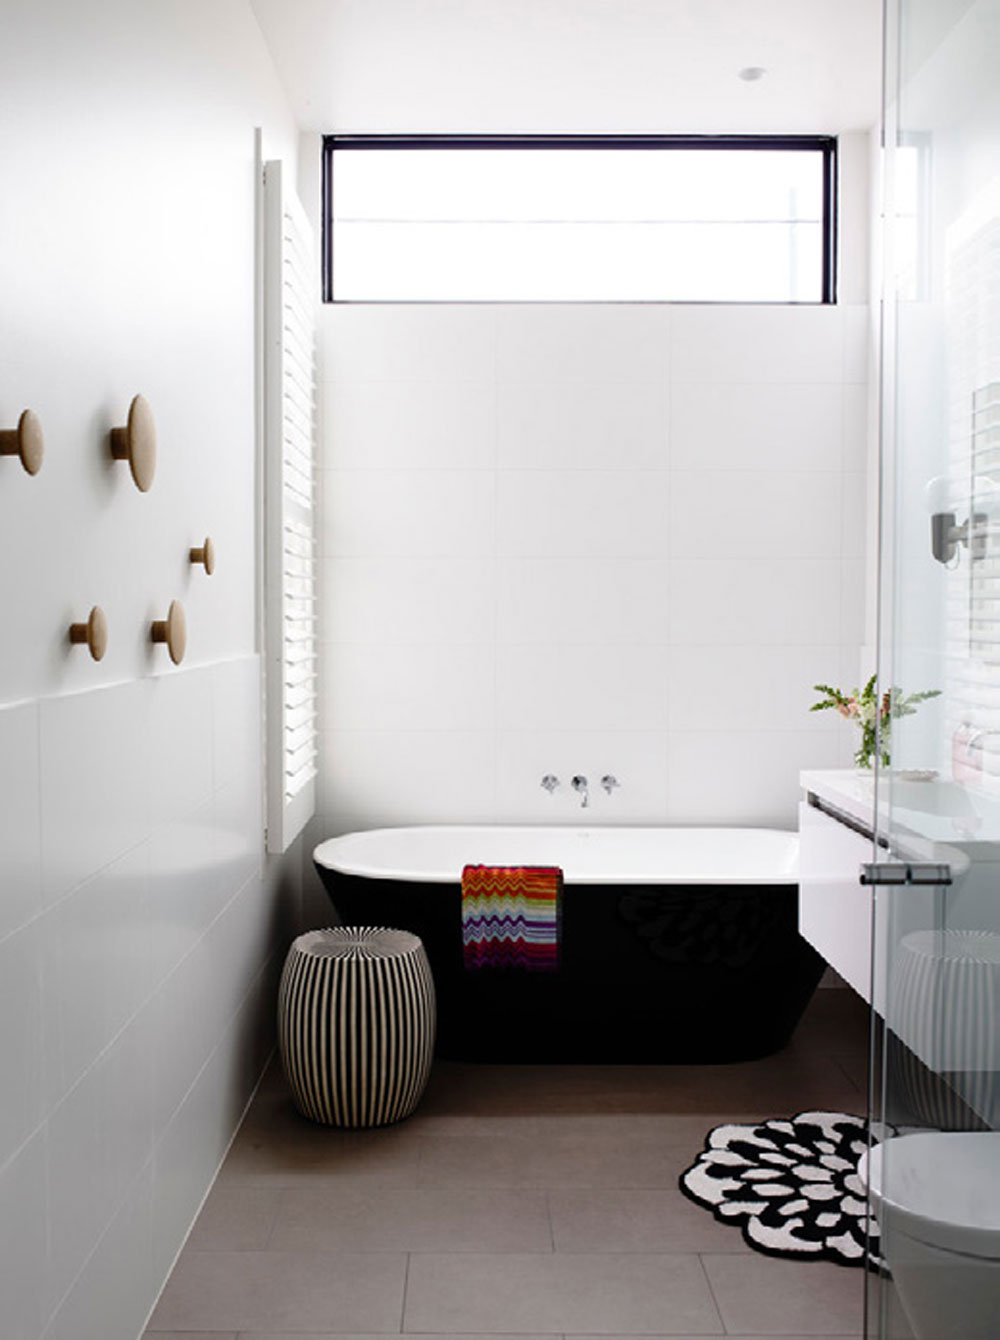 Designing-a-small-bathroom-ideas-and-tips-5 Designing-a-small-bathroom - ideas and tips